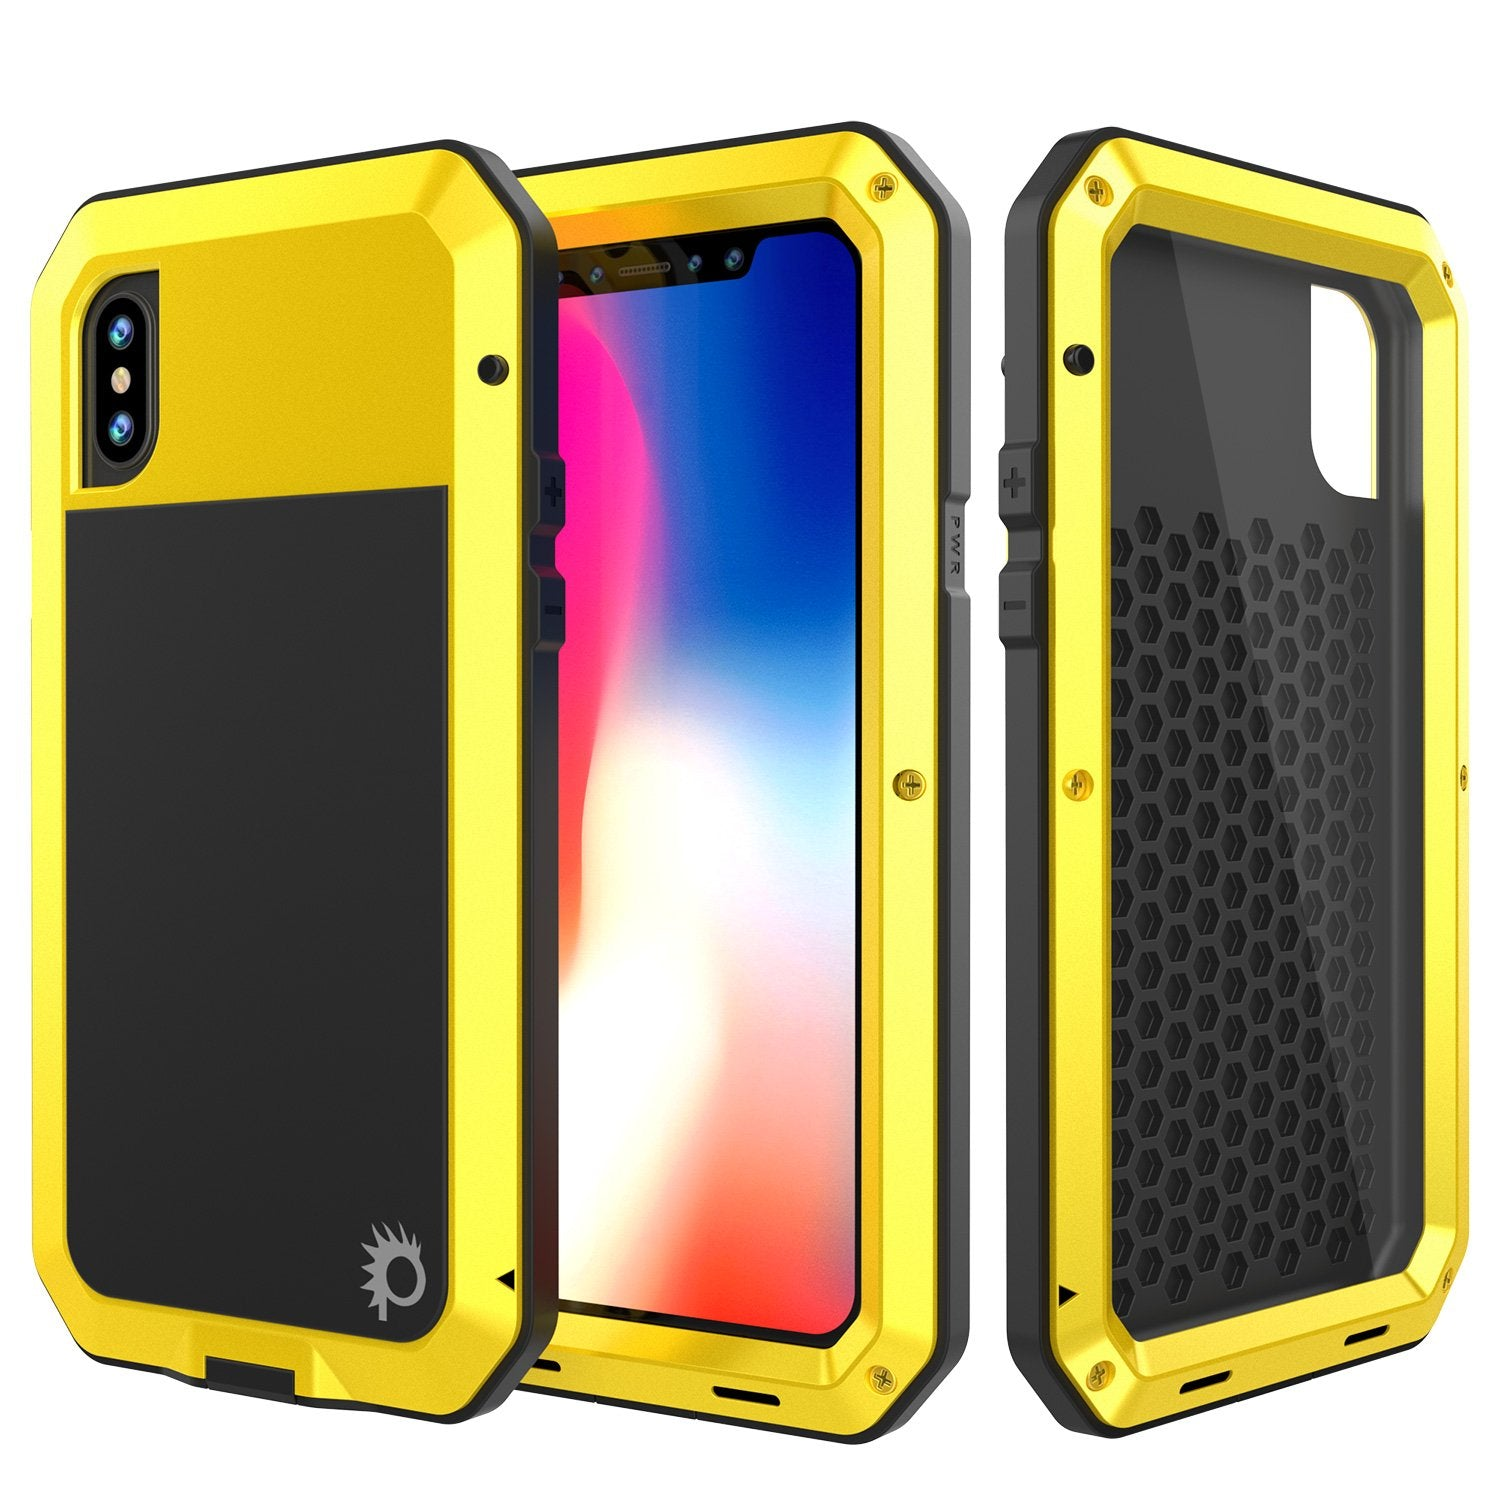 iPhone XR Metal Case, Heavy Duty Military Grade Armor Cover [shock proof] Full Body Hard [Neon]